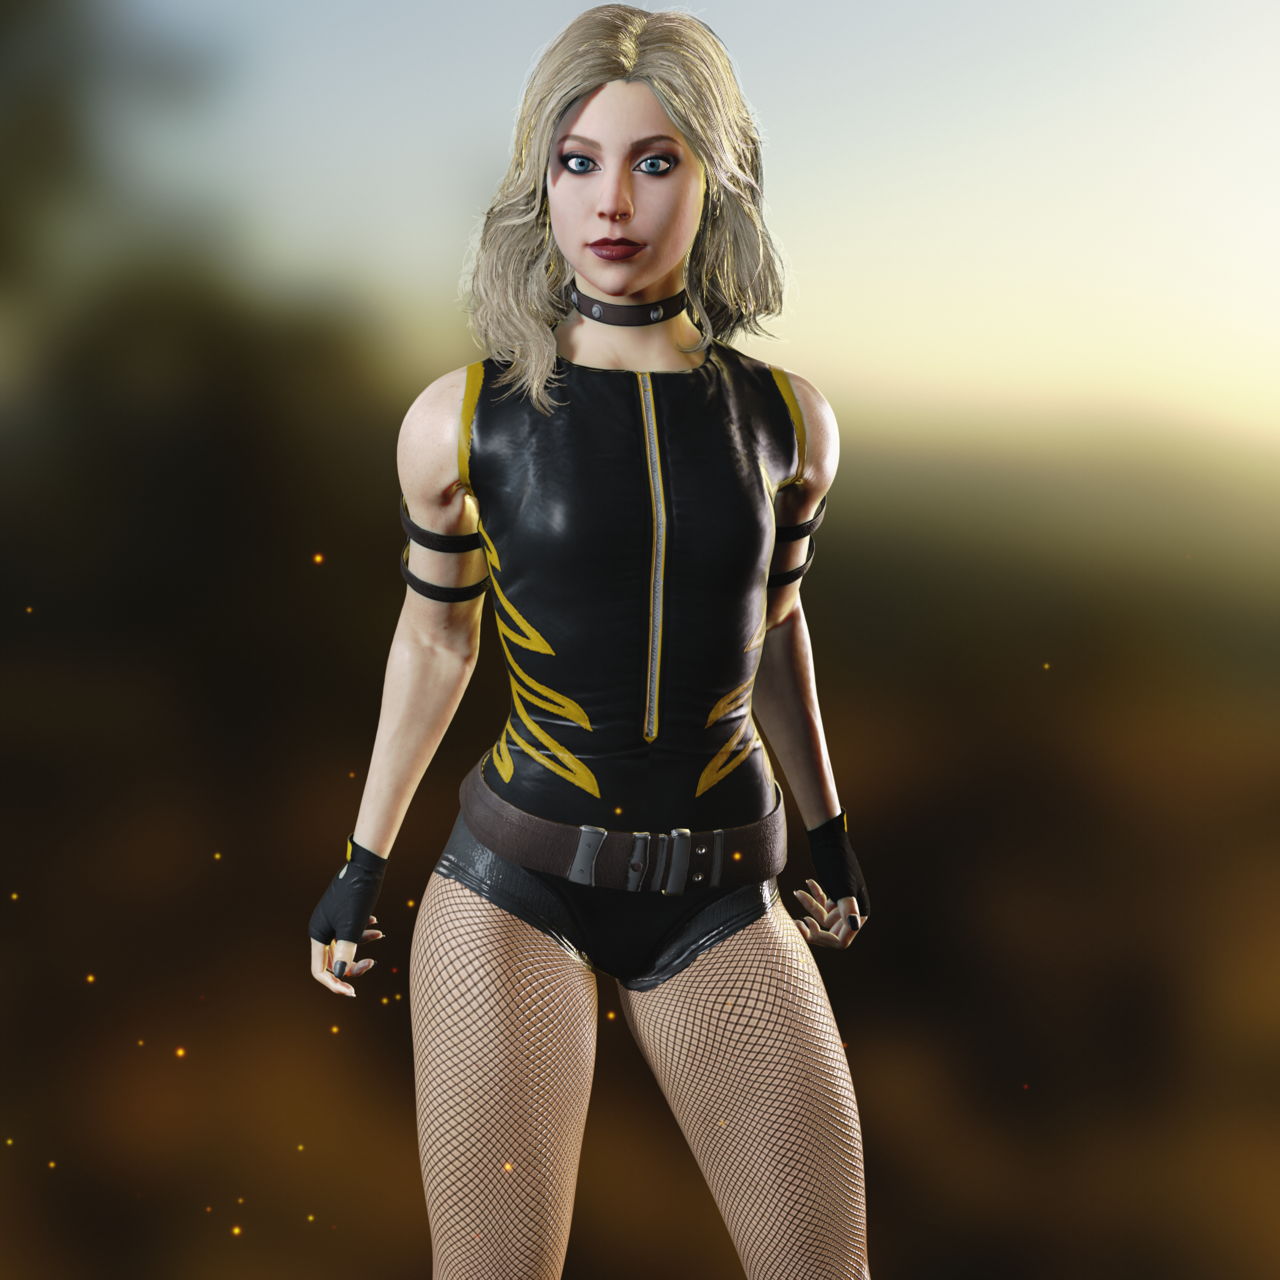 Injustice 2 Black Canary Render 1 By Roadfail Injustice 2 Black Canary Black Canary Injustice 2